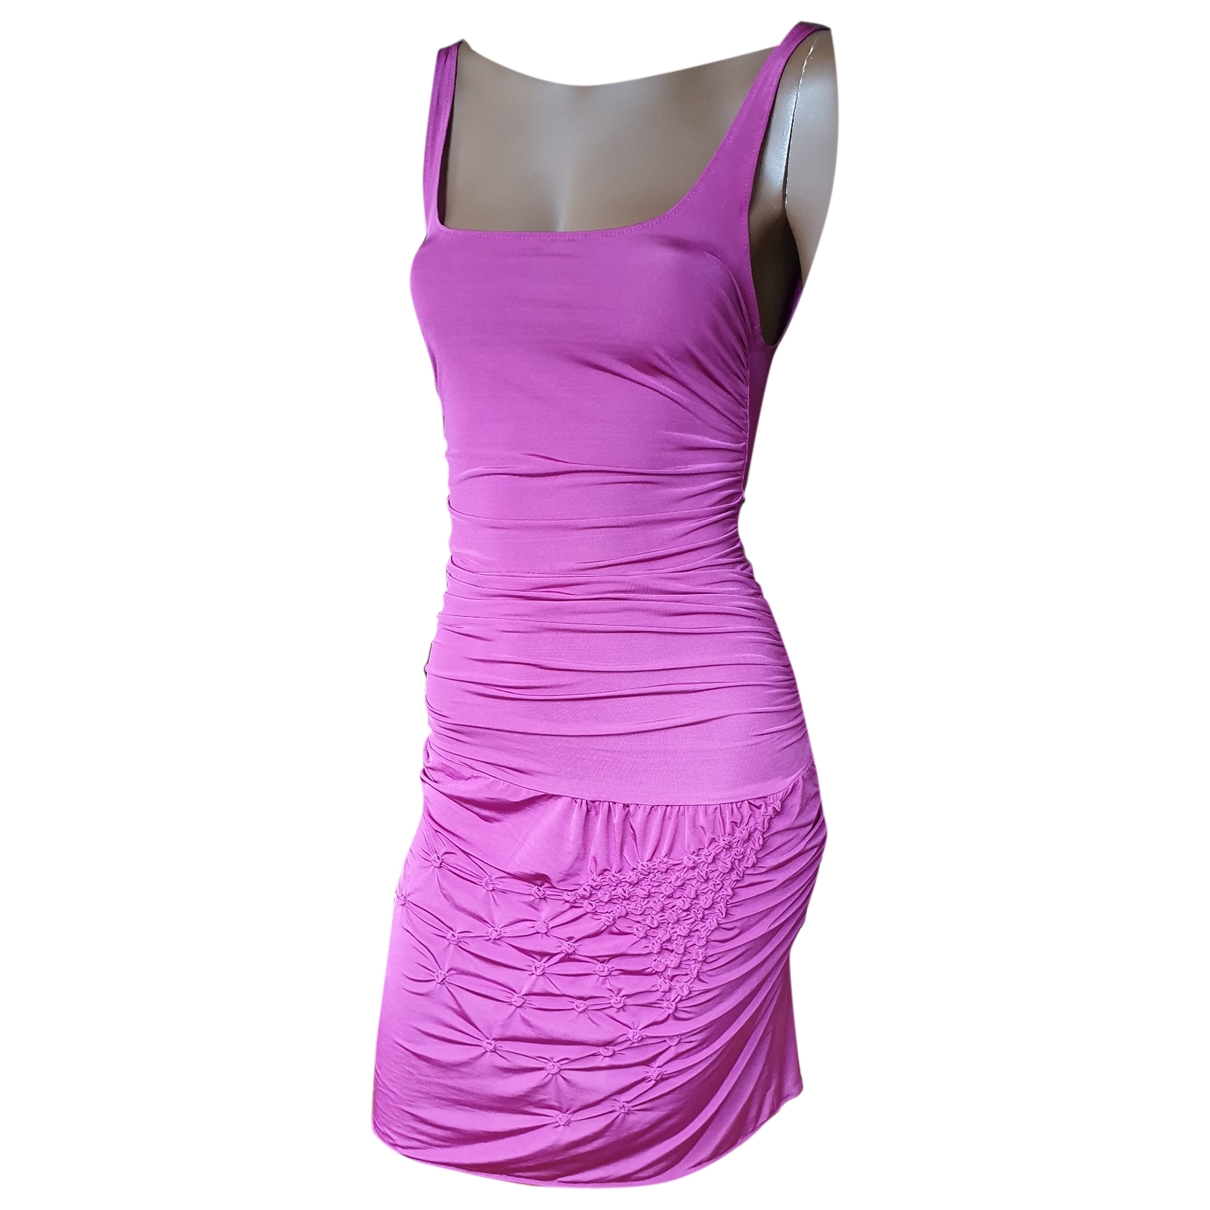 La Perla \N Purple dress for Women 44 IT